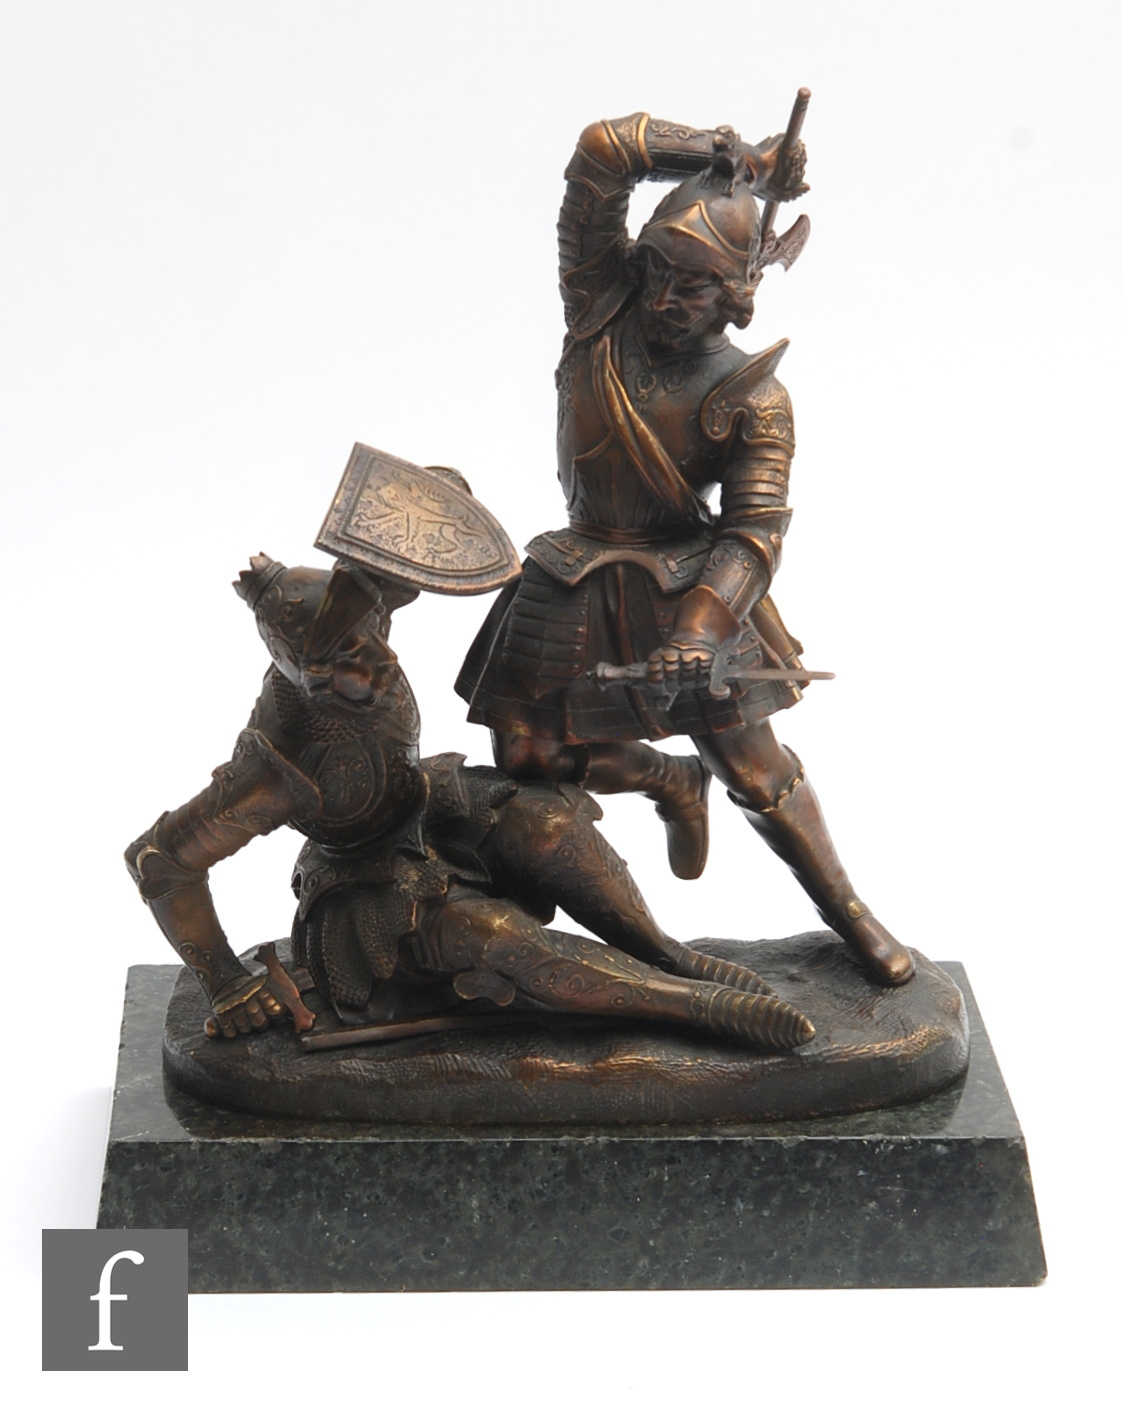 A late 19th to early 20th century German bronze figure of two knights in combat with full armour and